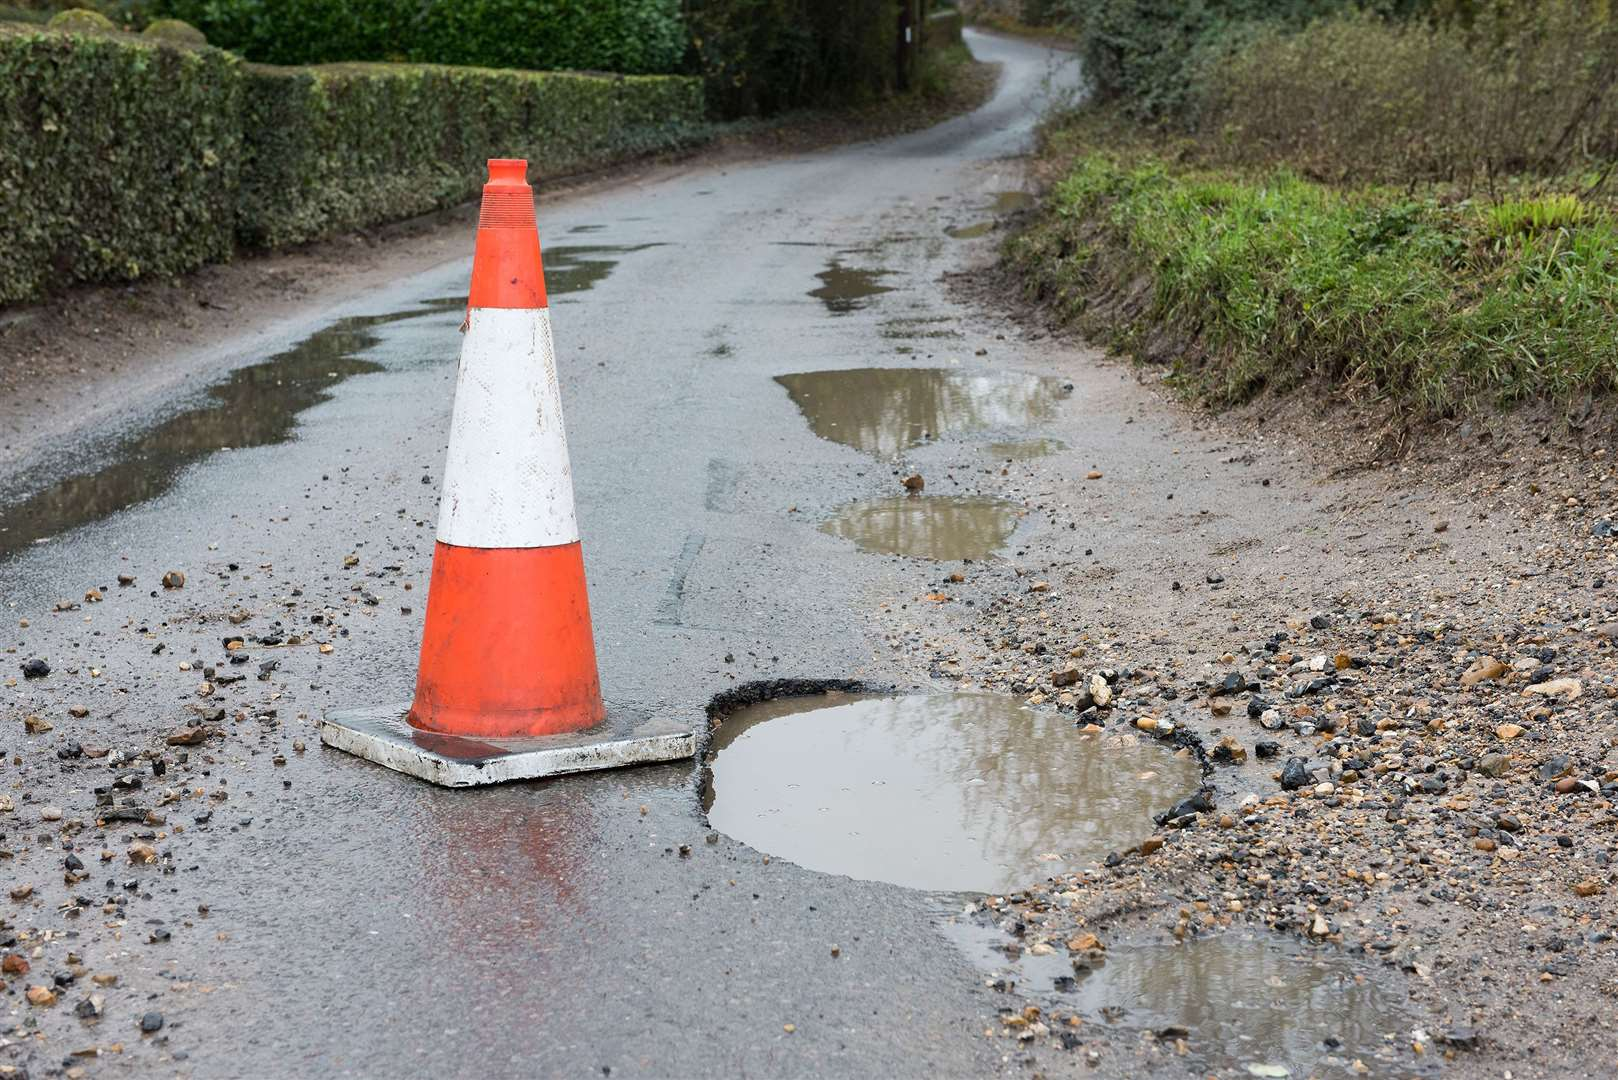 Drones and 3D printing could help solve the misery of potholes for motorists